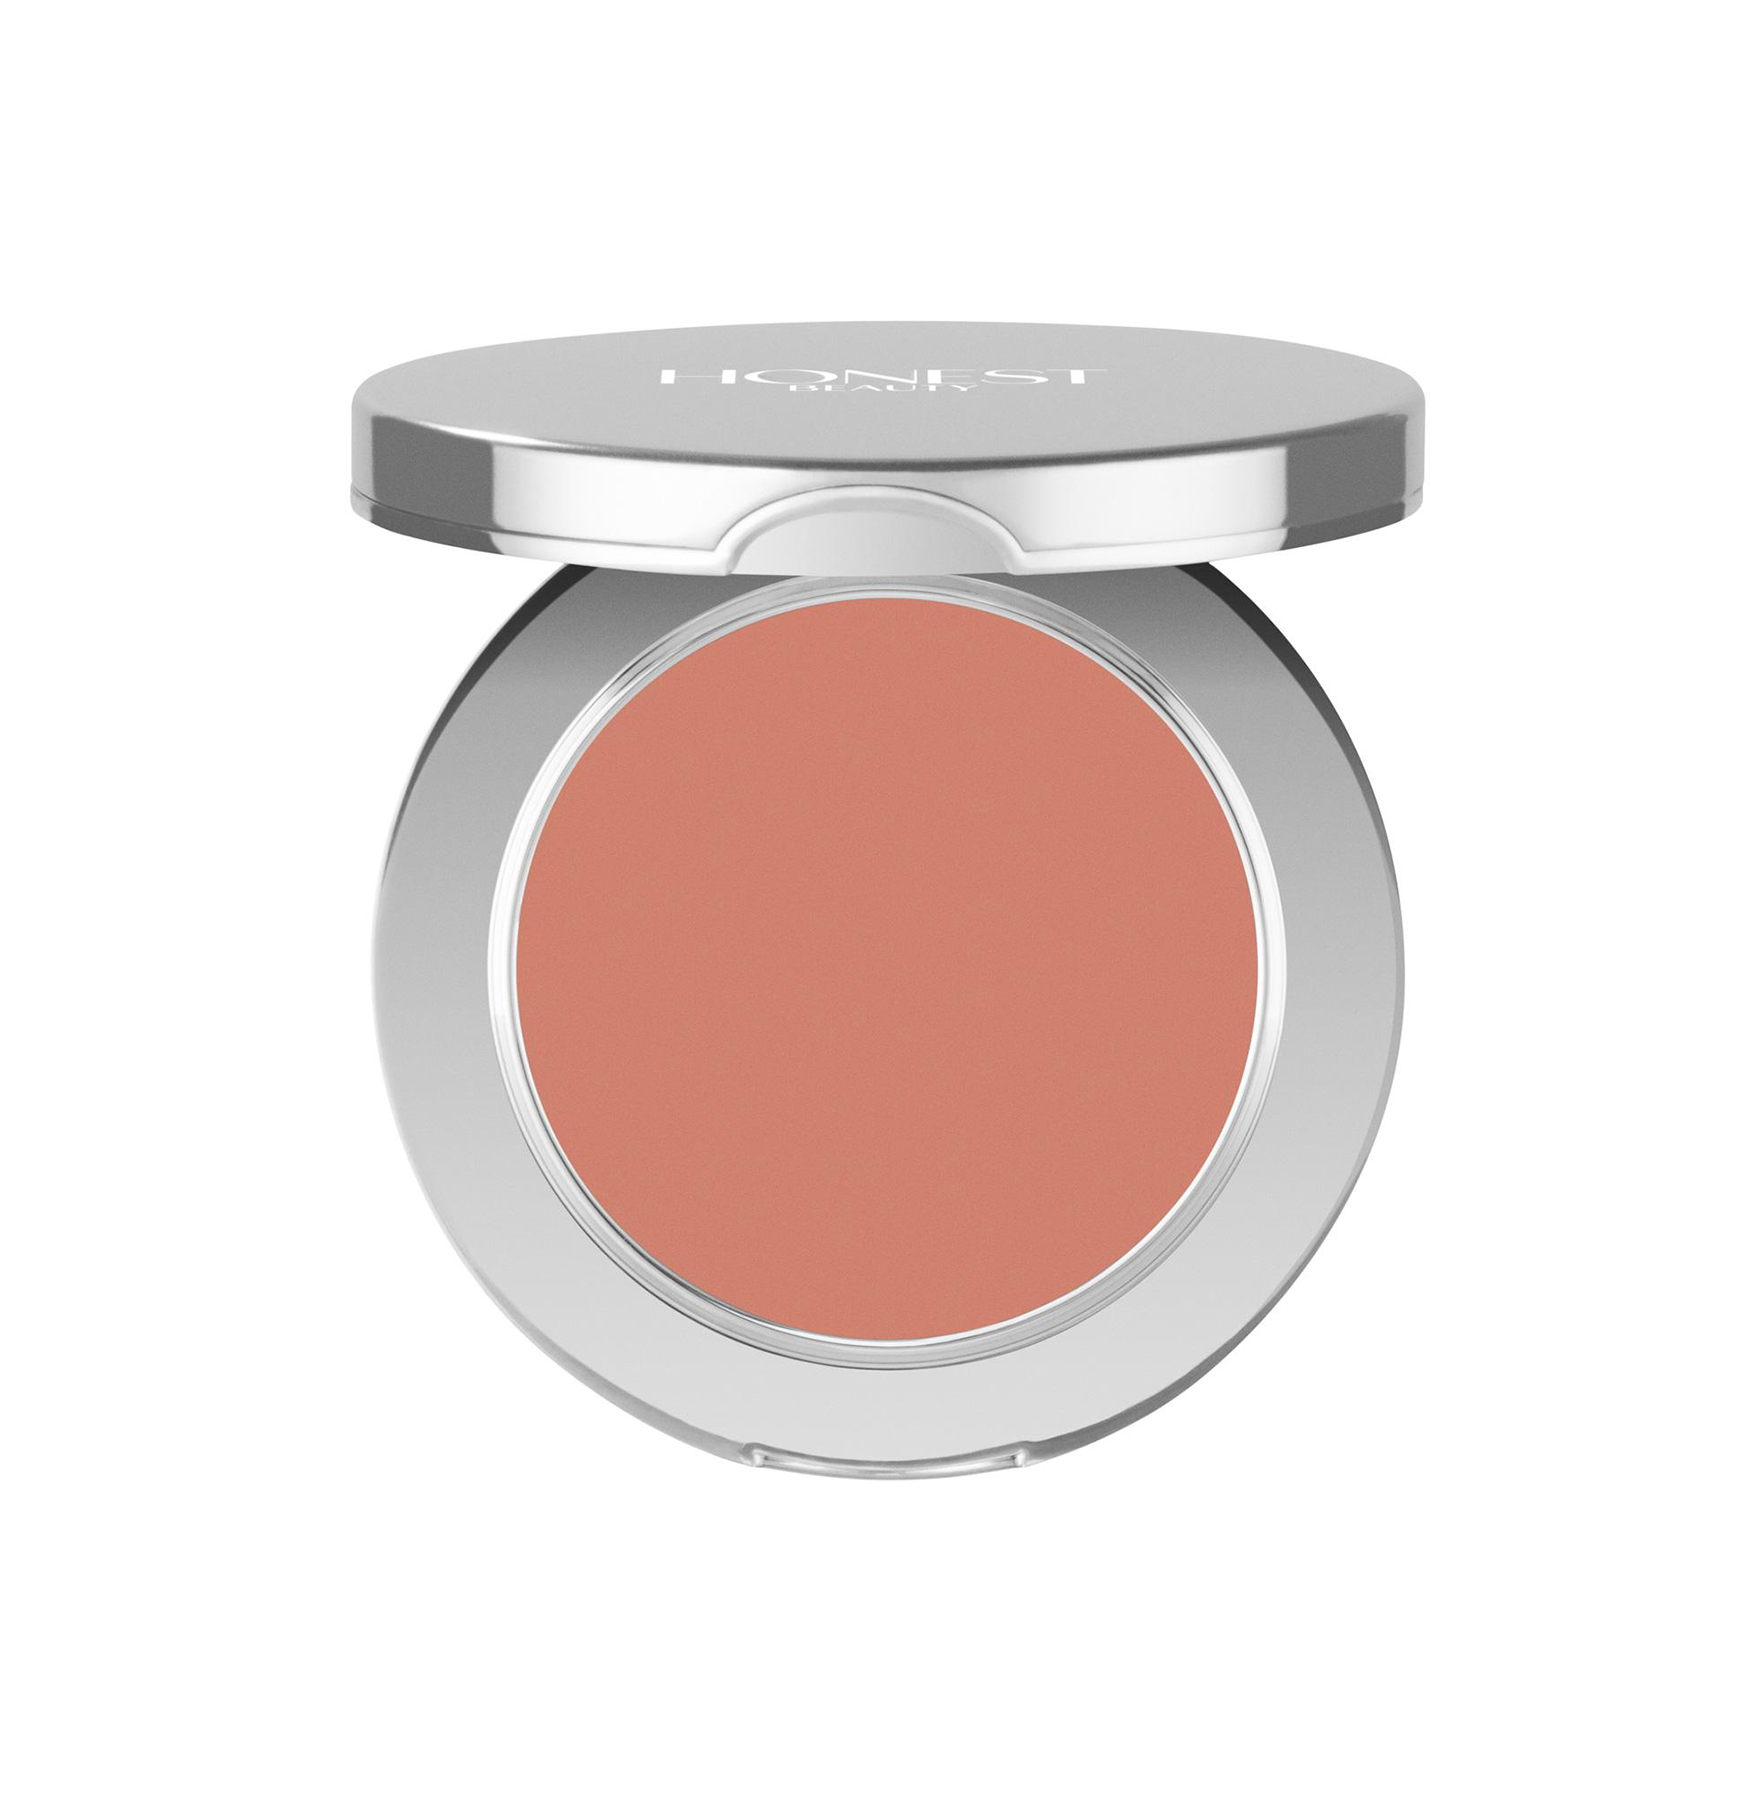 Honest Beauty Crème Blush